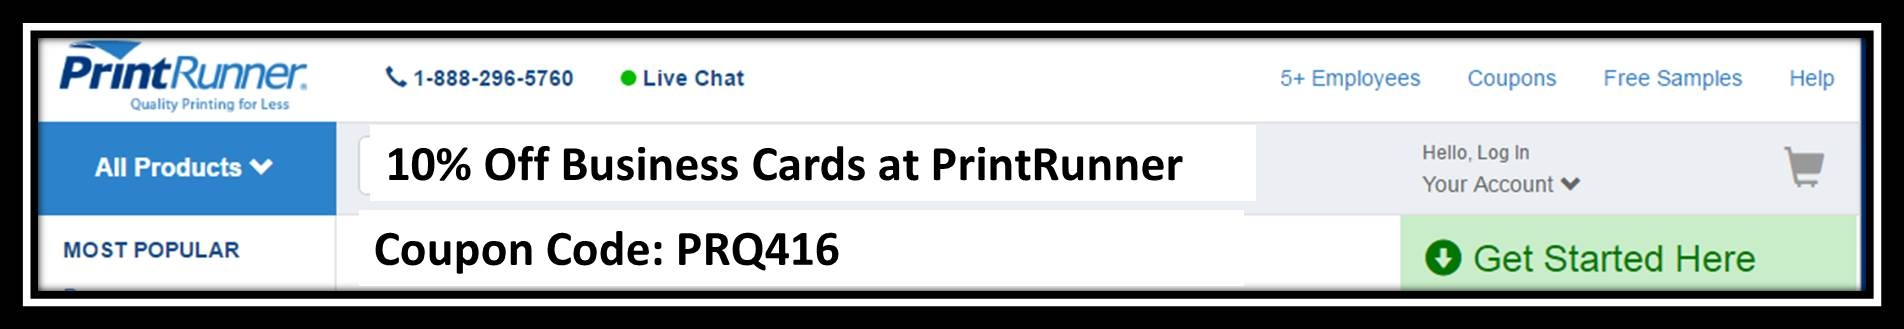 Print runner coupon code